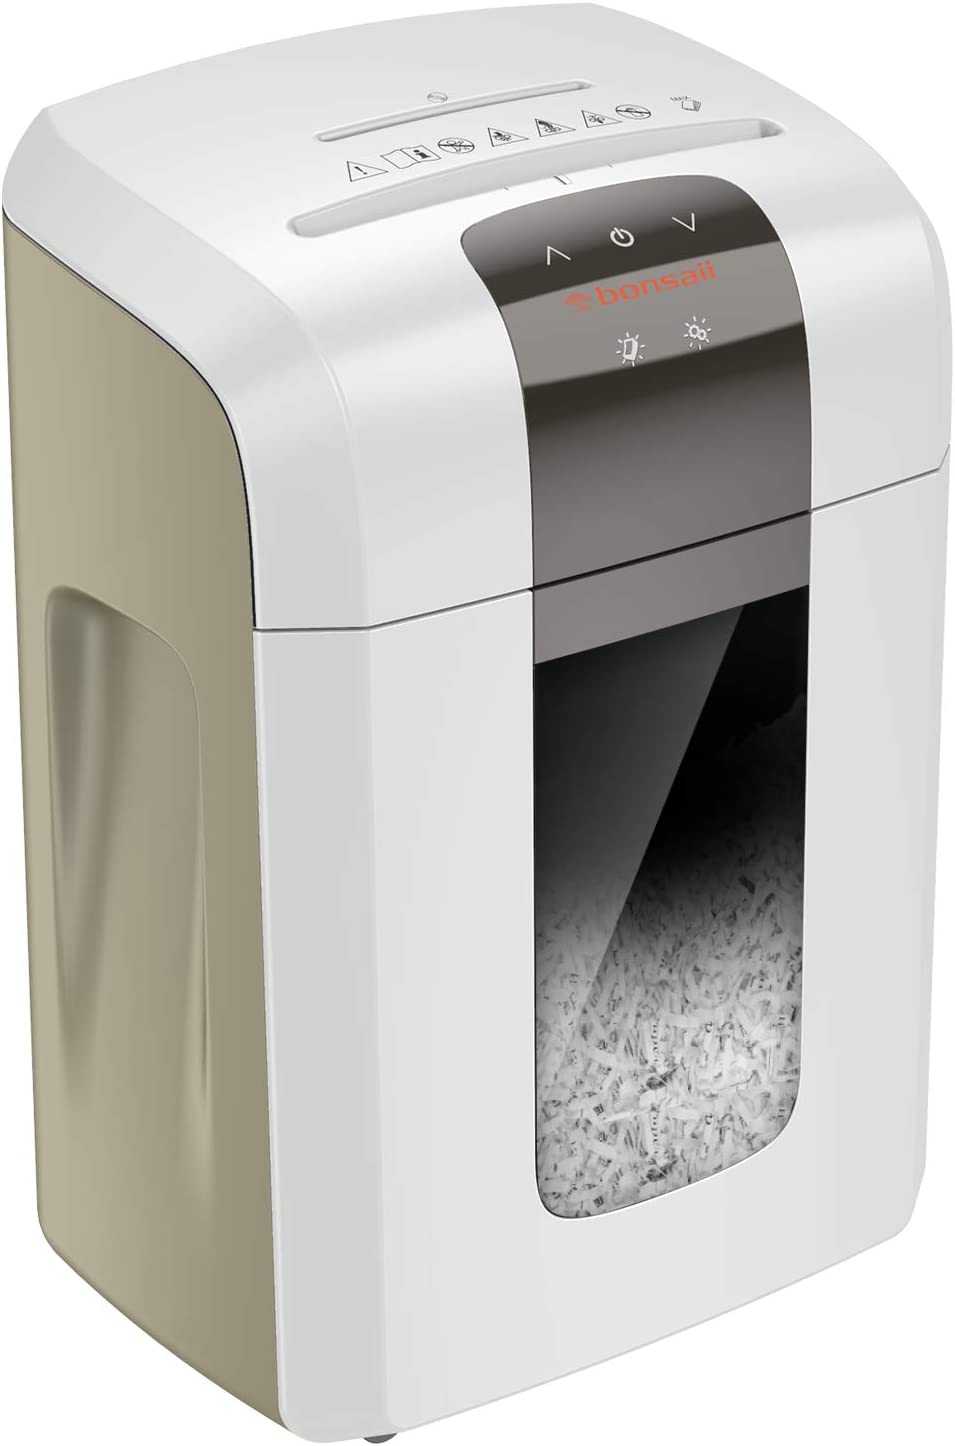 Bonsaii Paper Shredder, 120 Minutes Continuous Running Time, 8-Sheet Heavy Duty Micro Cut CD Credit Card Shredder for Office with 6 Gallons Pull-Out Basket and 4 Casters, White